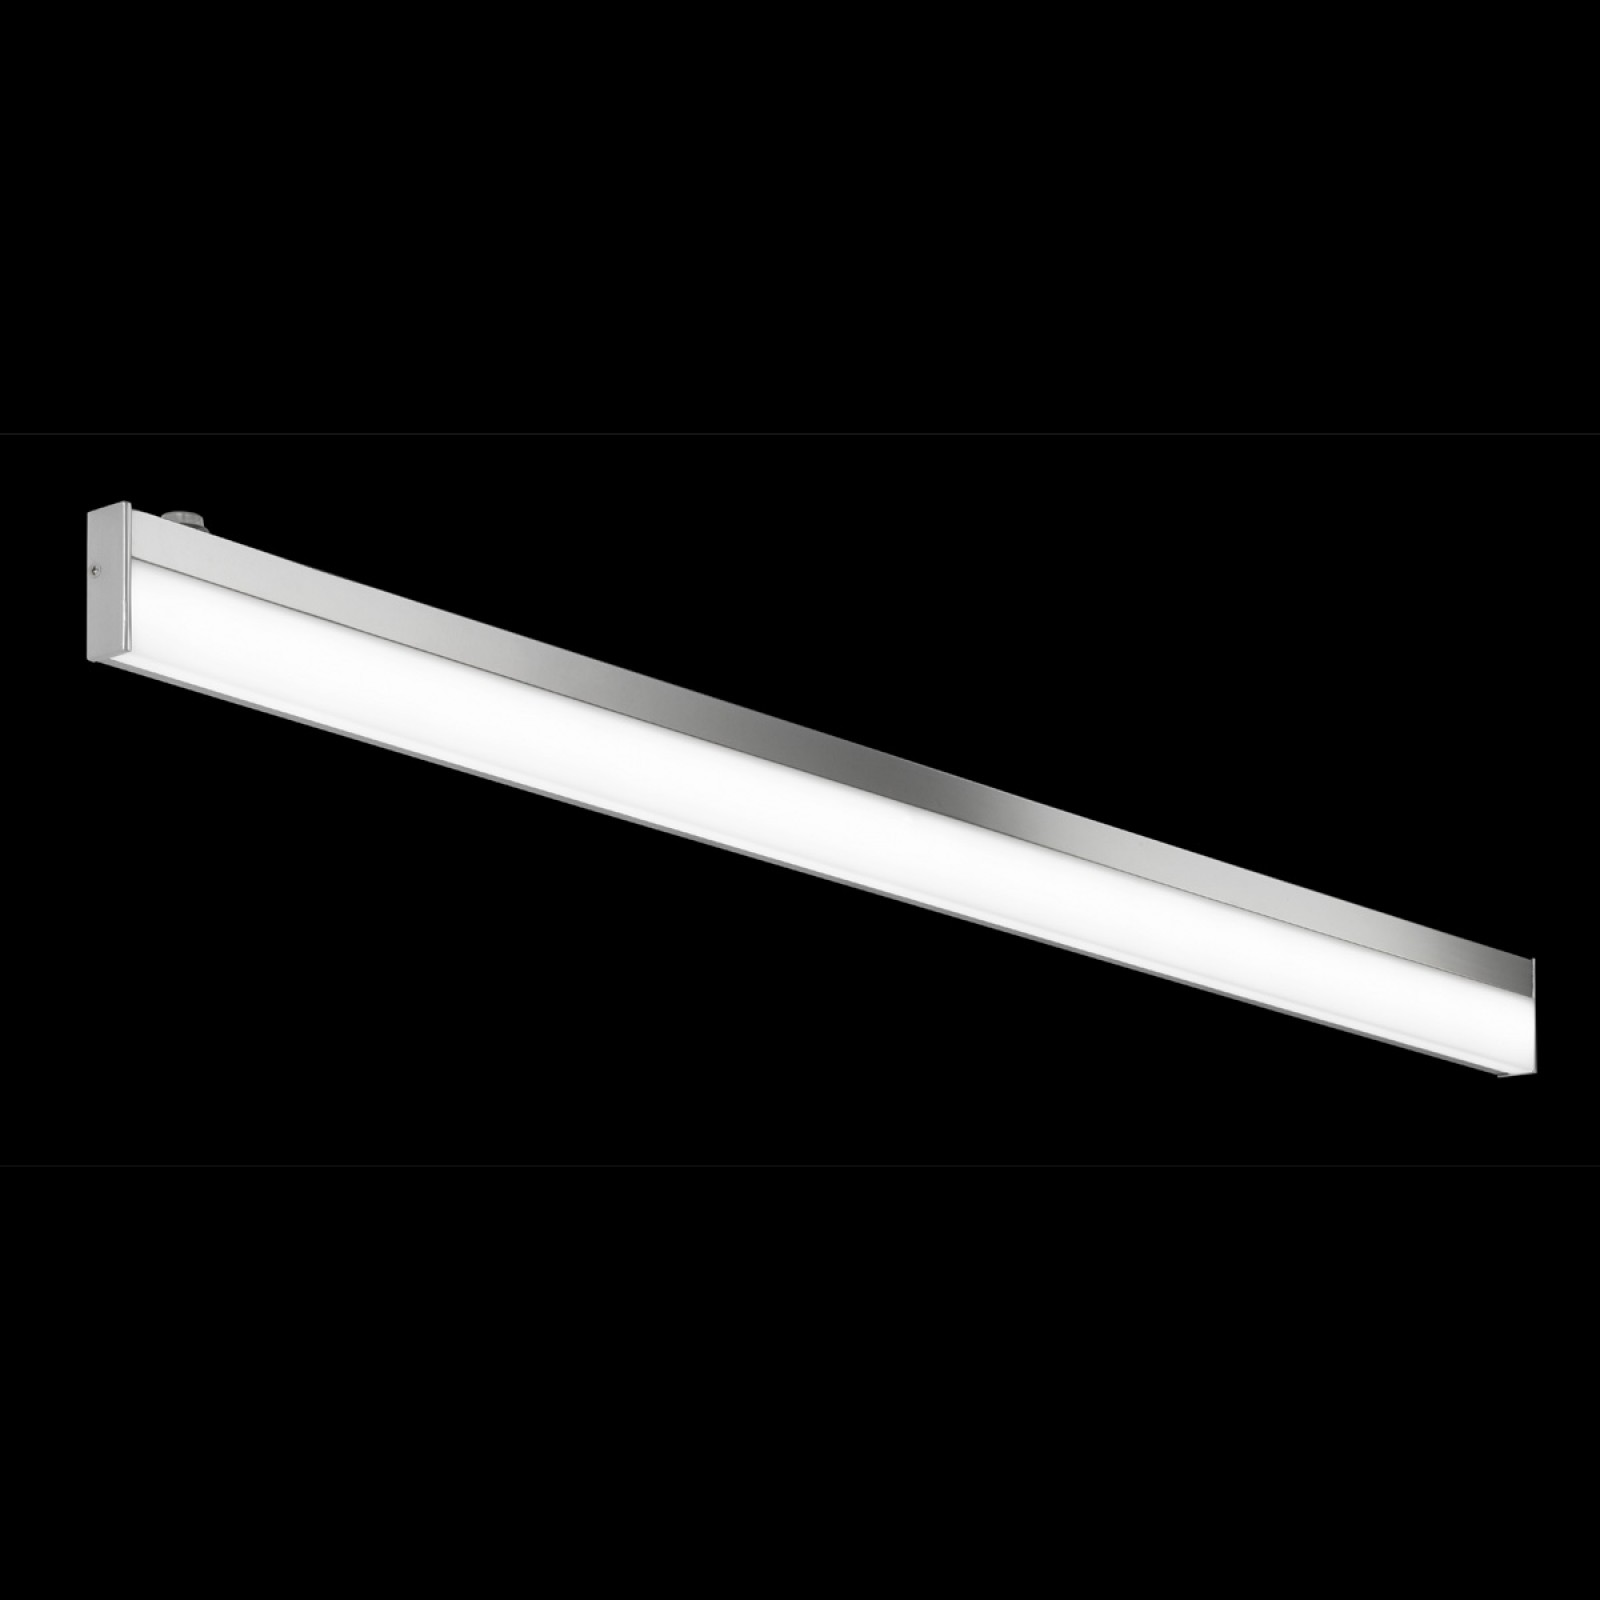 LED-seinävalaisin H2O 2817 1200x25x70 mm IP44 kromi